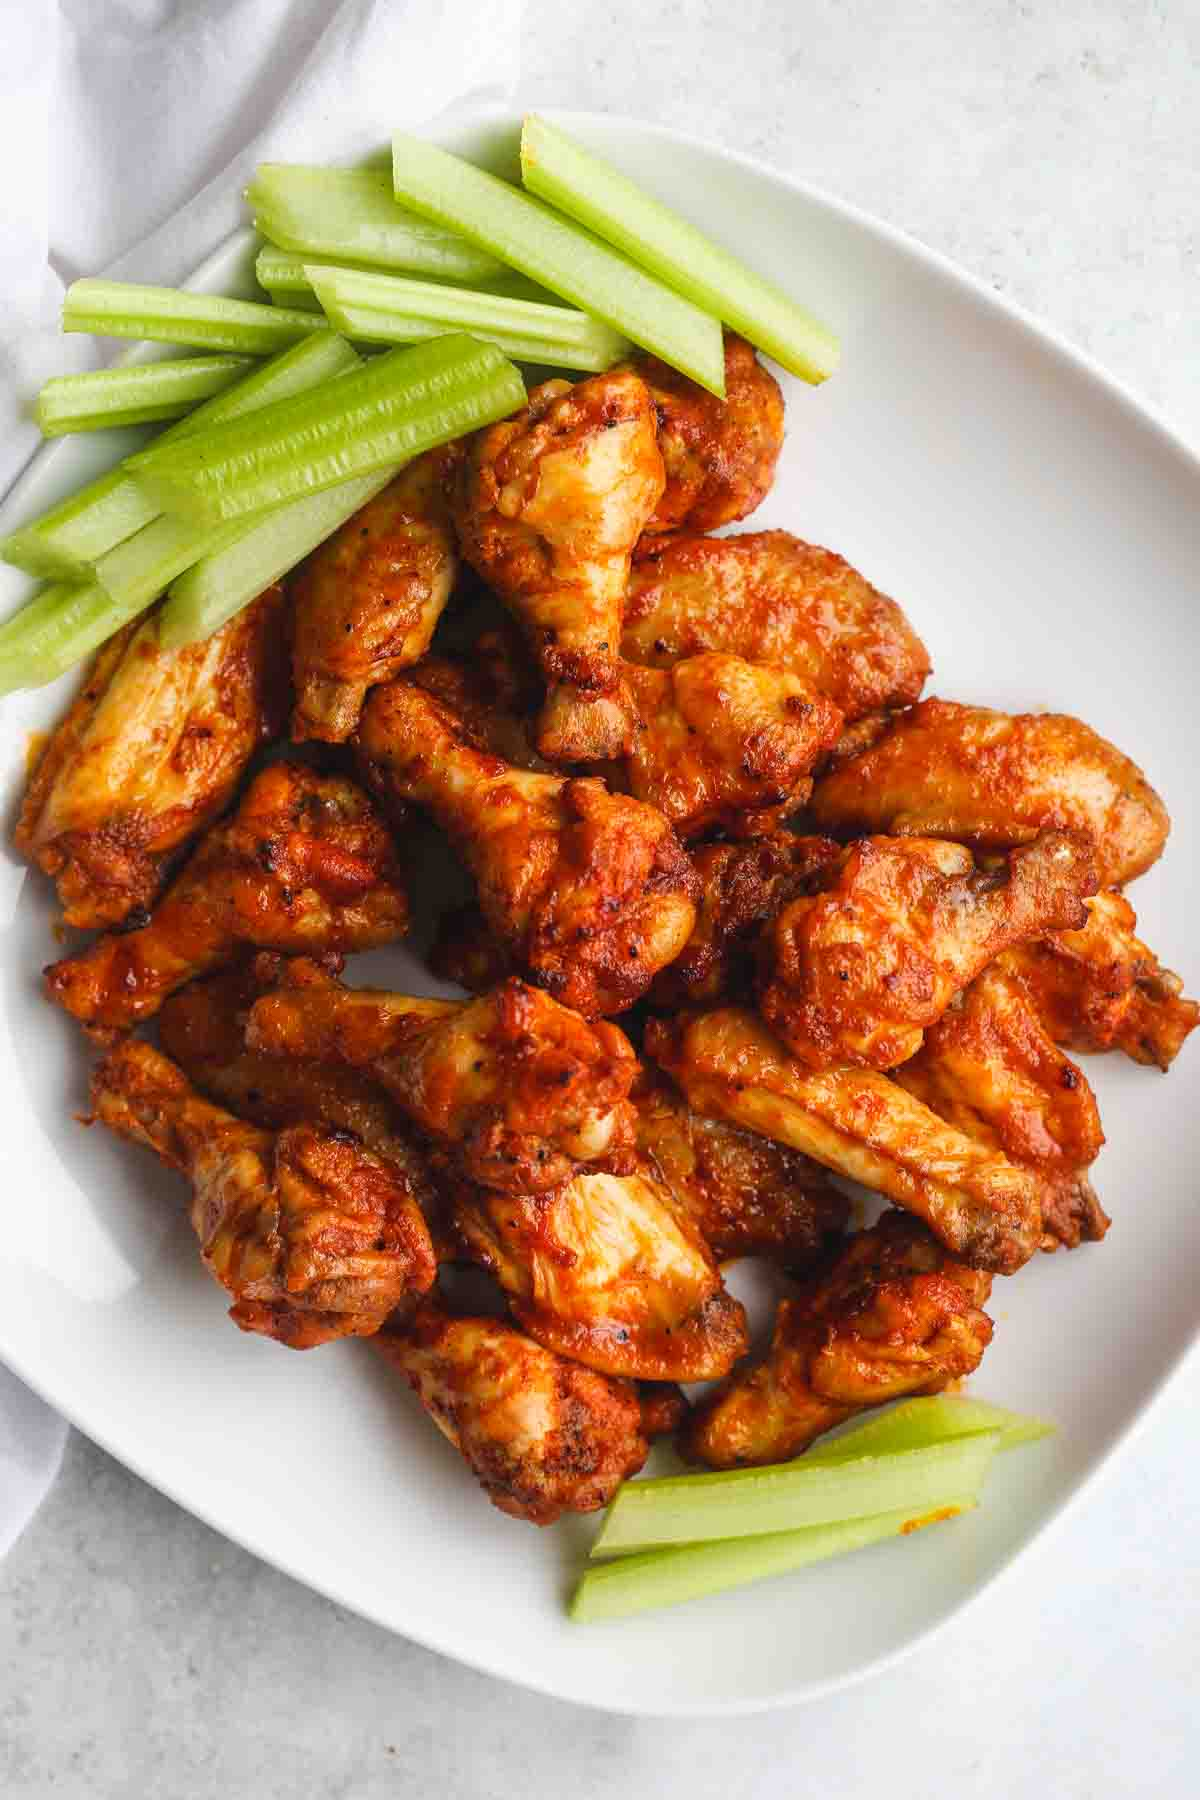 Instant Pot chicken wings served on a white platter with celery sticks